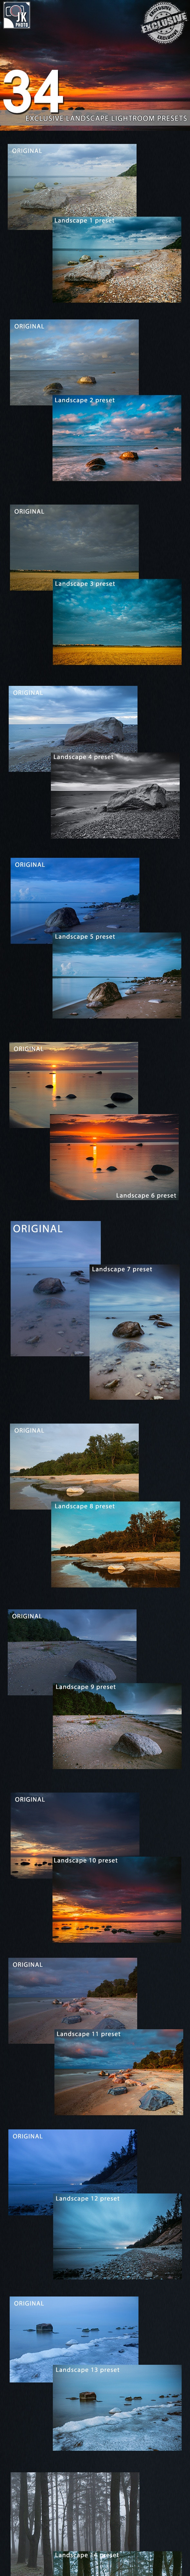 34 Exclusive Landscape Photography Presets - Landscape Lightroom Presets